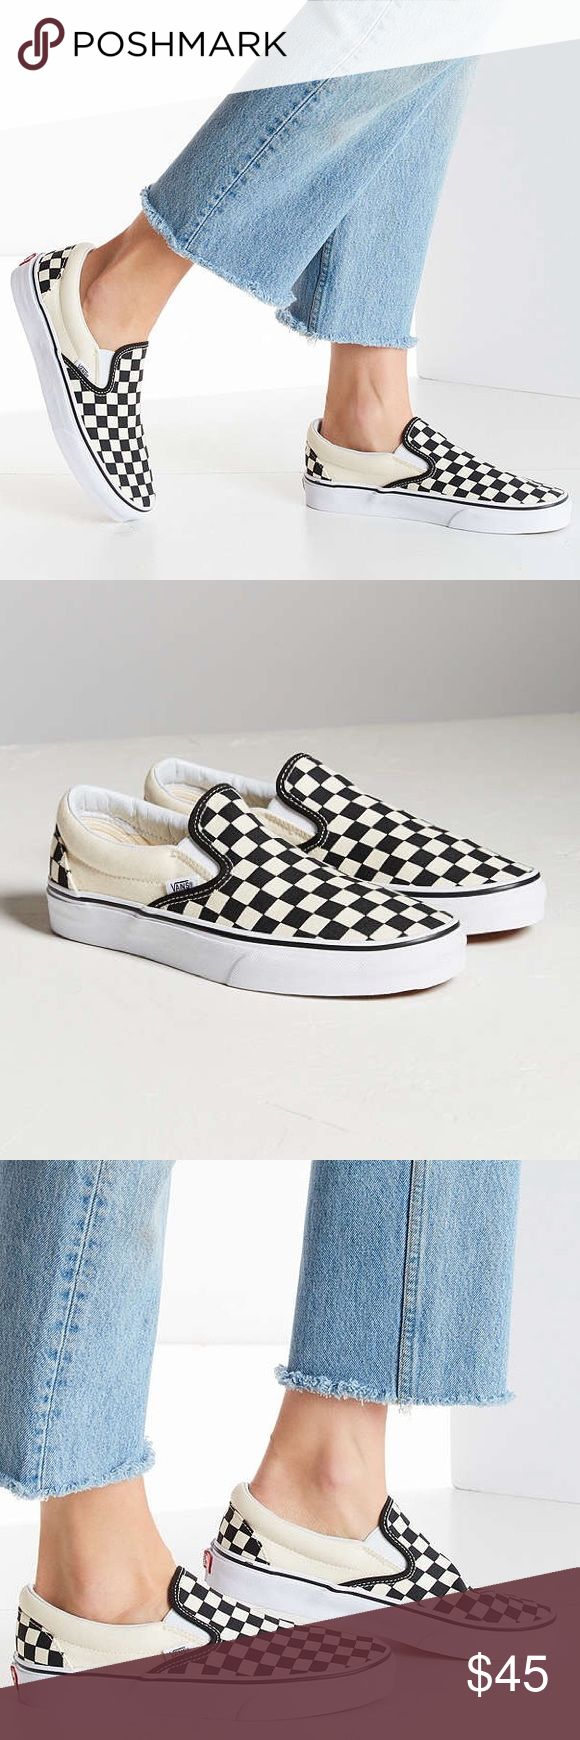 Vans Checkerboard Slip-ones! Vans Checkerboard Slip-on shoes! Women's size 8.5. Worn twice, perfect condition! Vans Shoes Sneakers